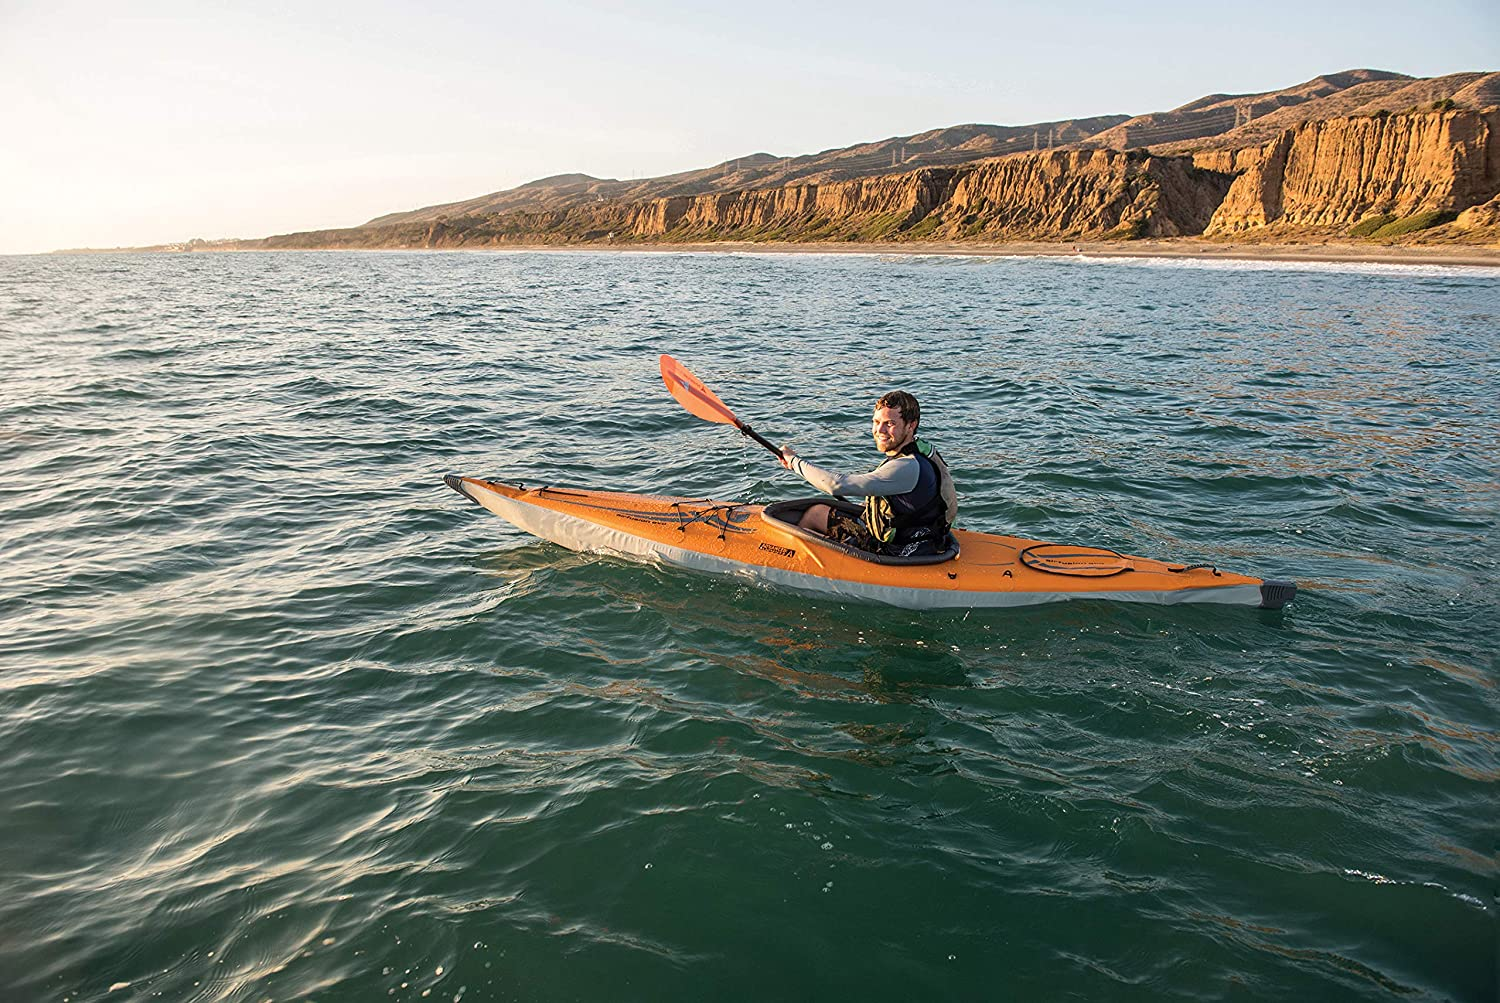 a person paddling in a kayak on an ocean